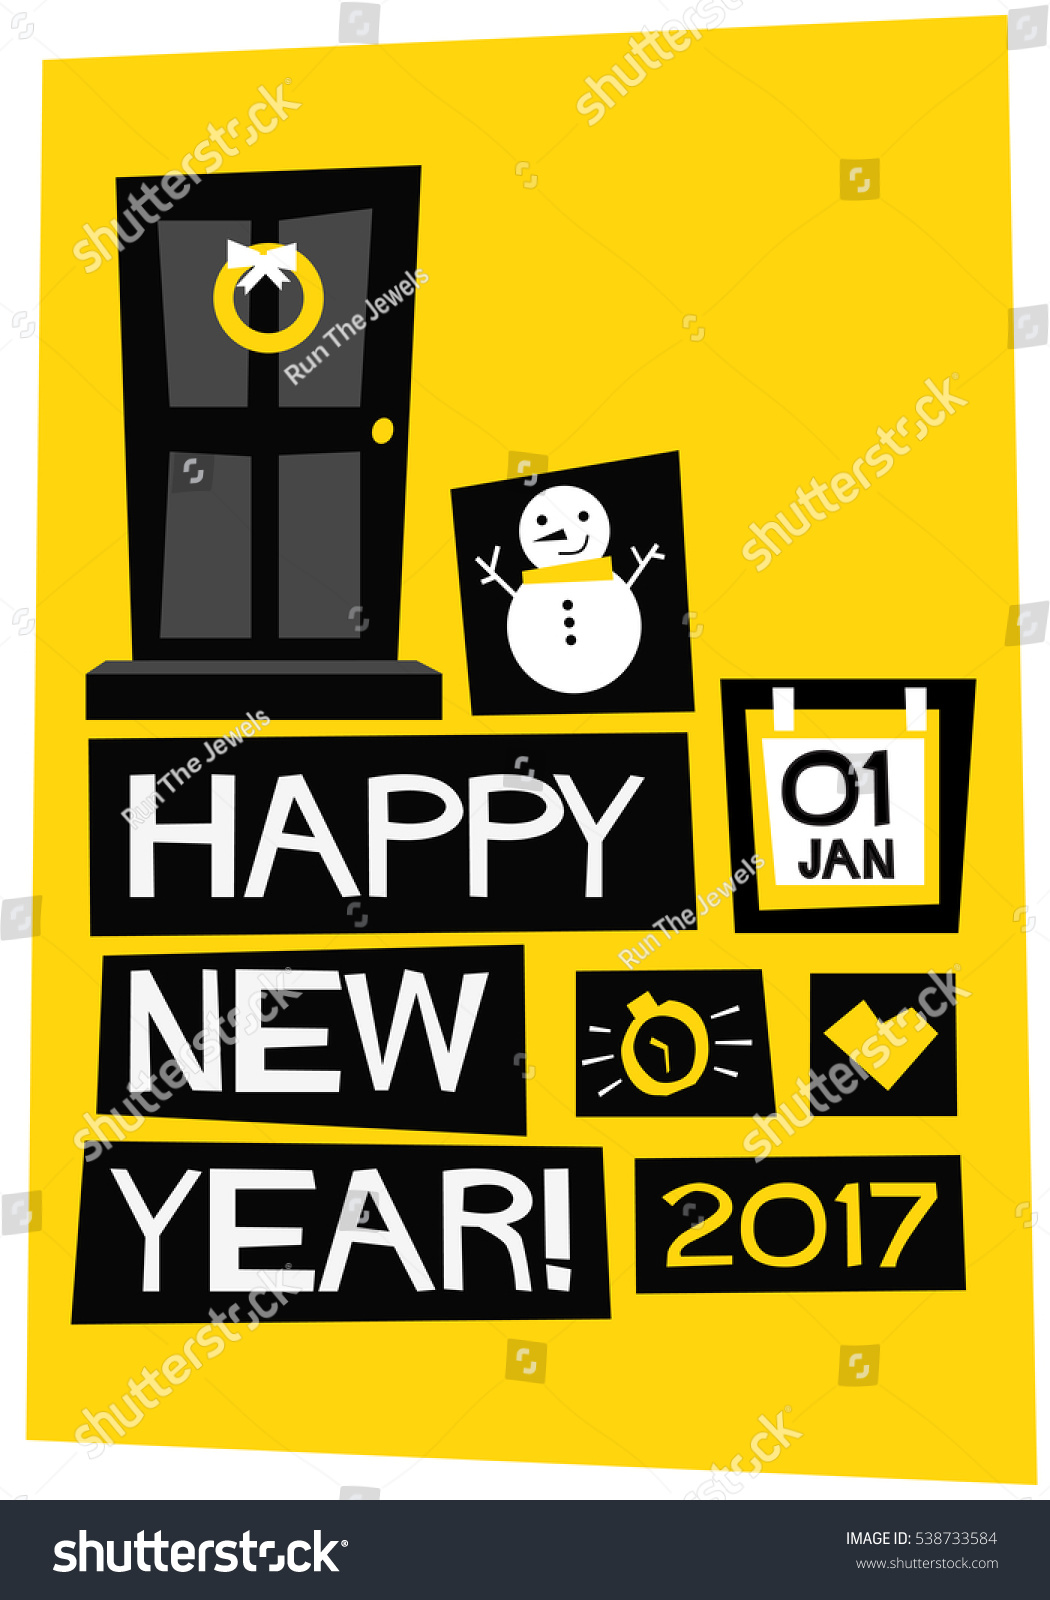 happy new year 2017 01 january flat style vector illustration poster design